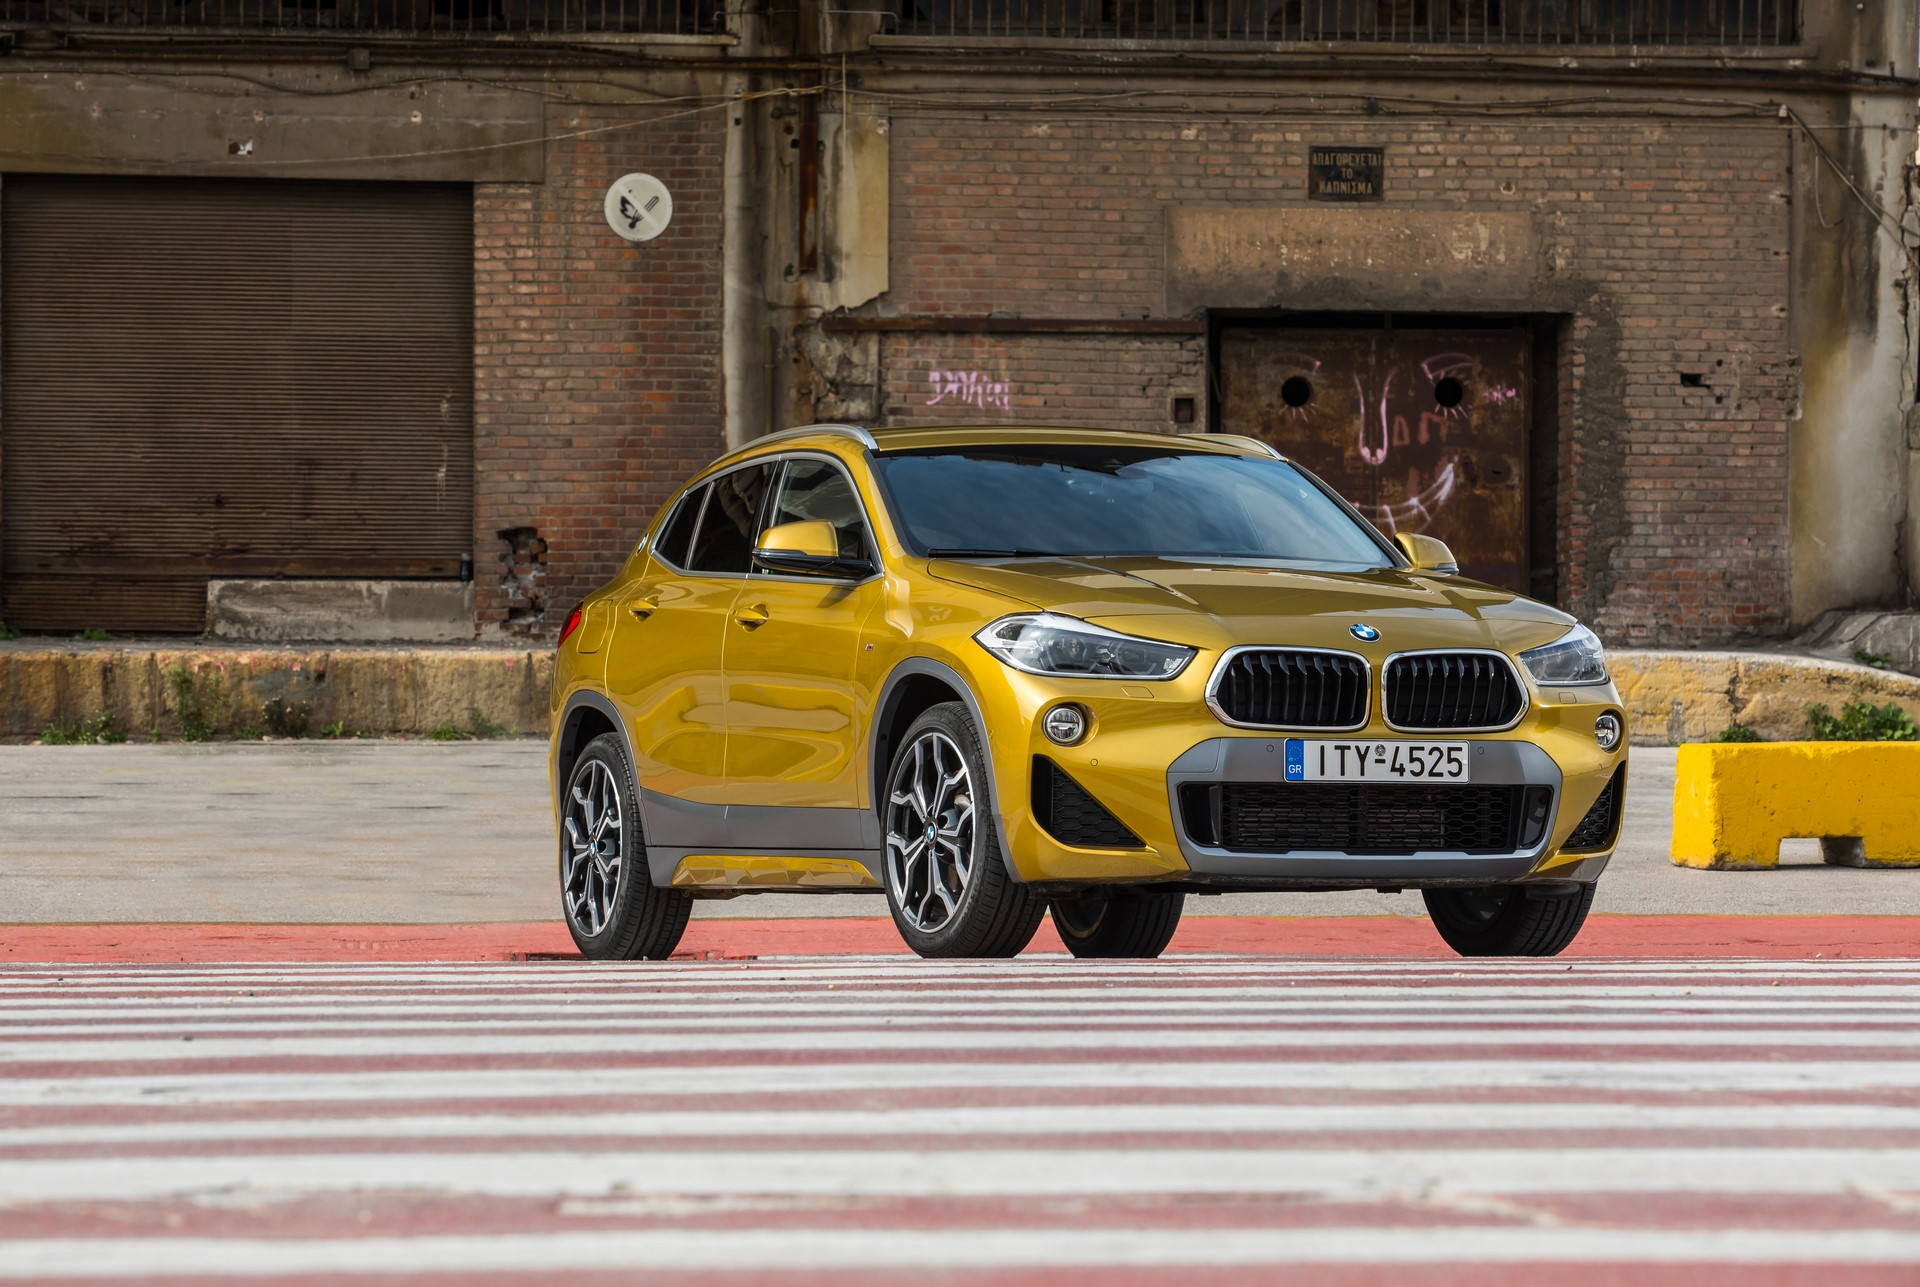 BMW X2 Greek 2018 (1)